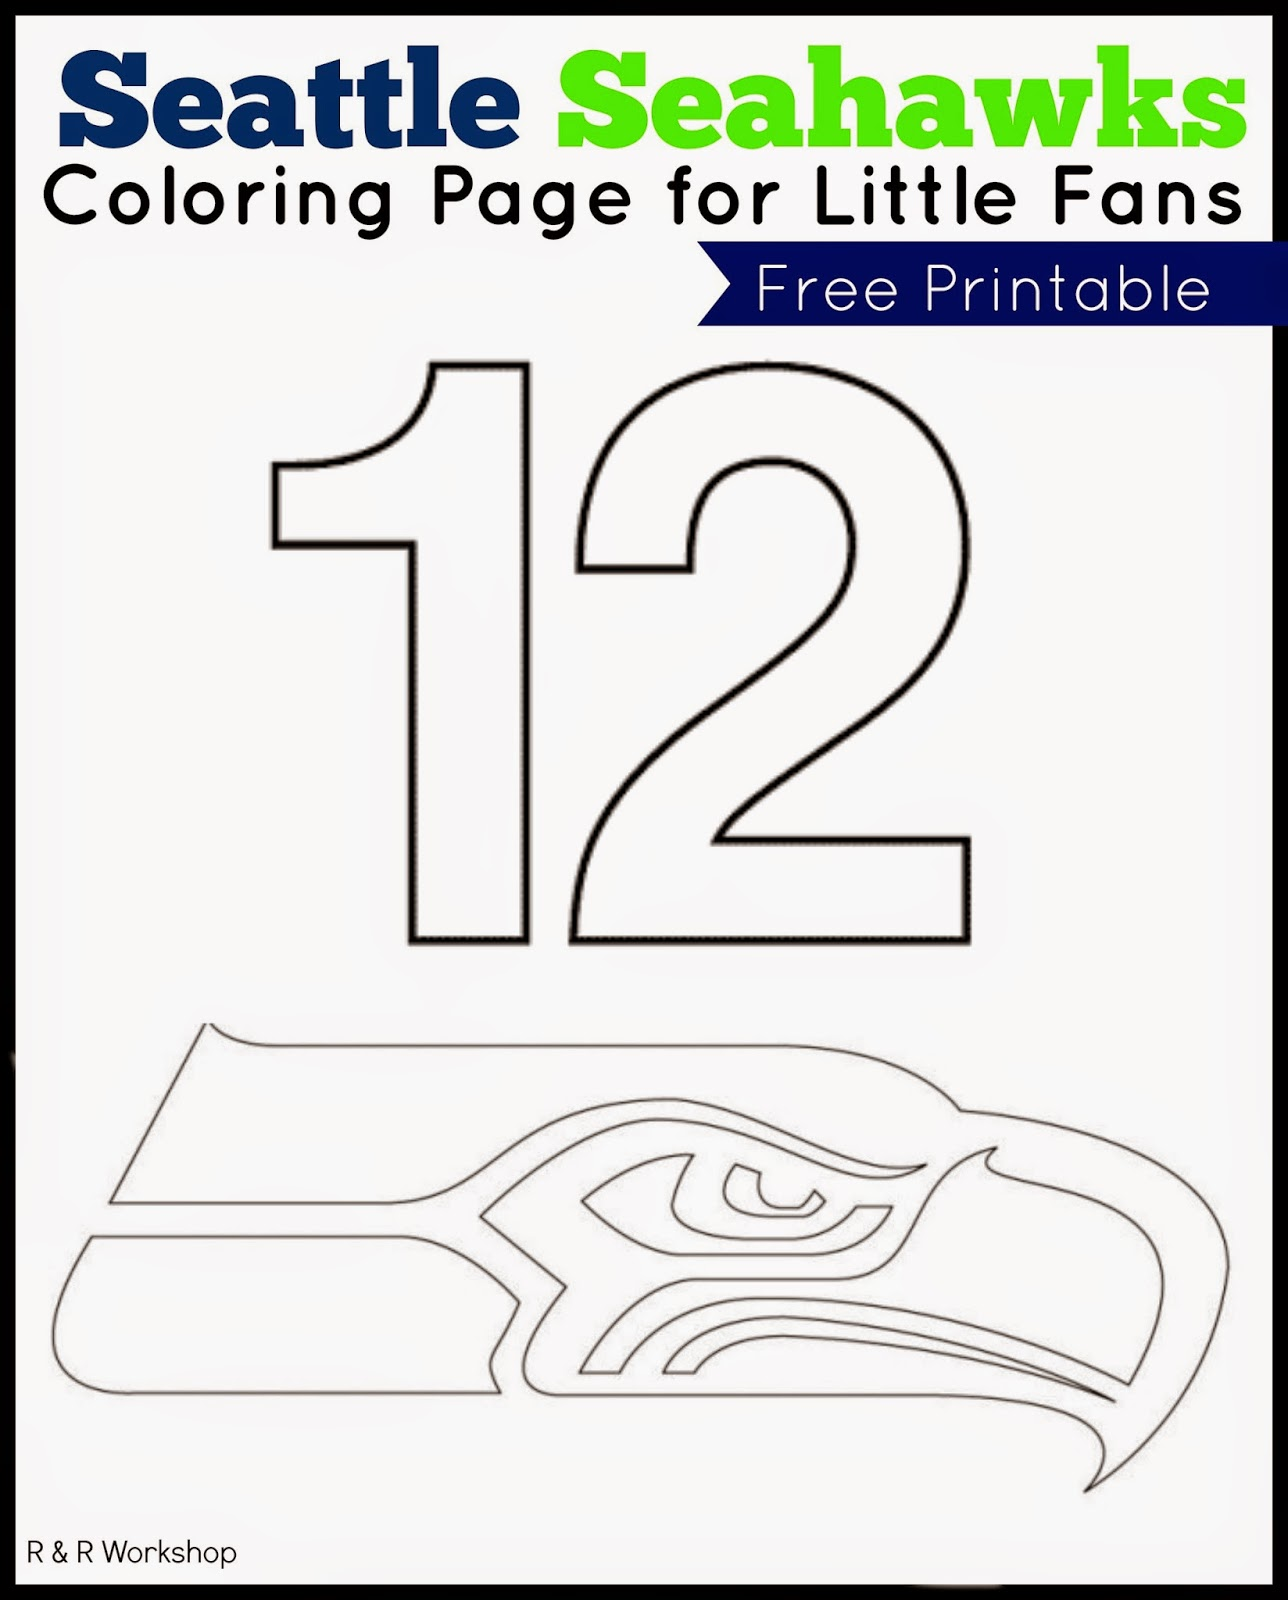 Pin Seahawks Coloring Pages On Pinterest Seattle Seahawks Coloring Pages